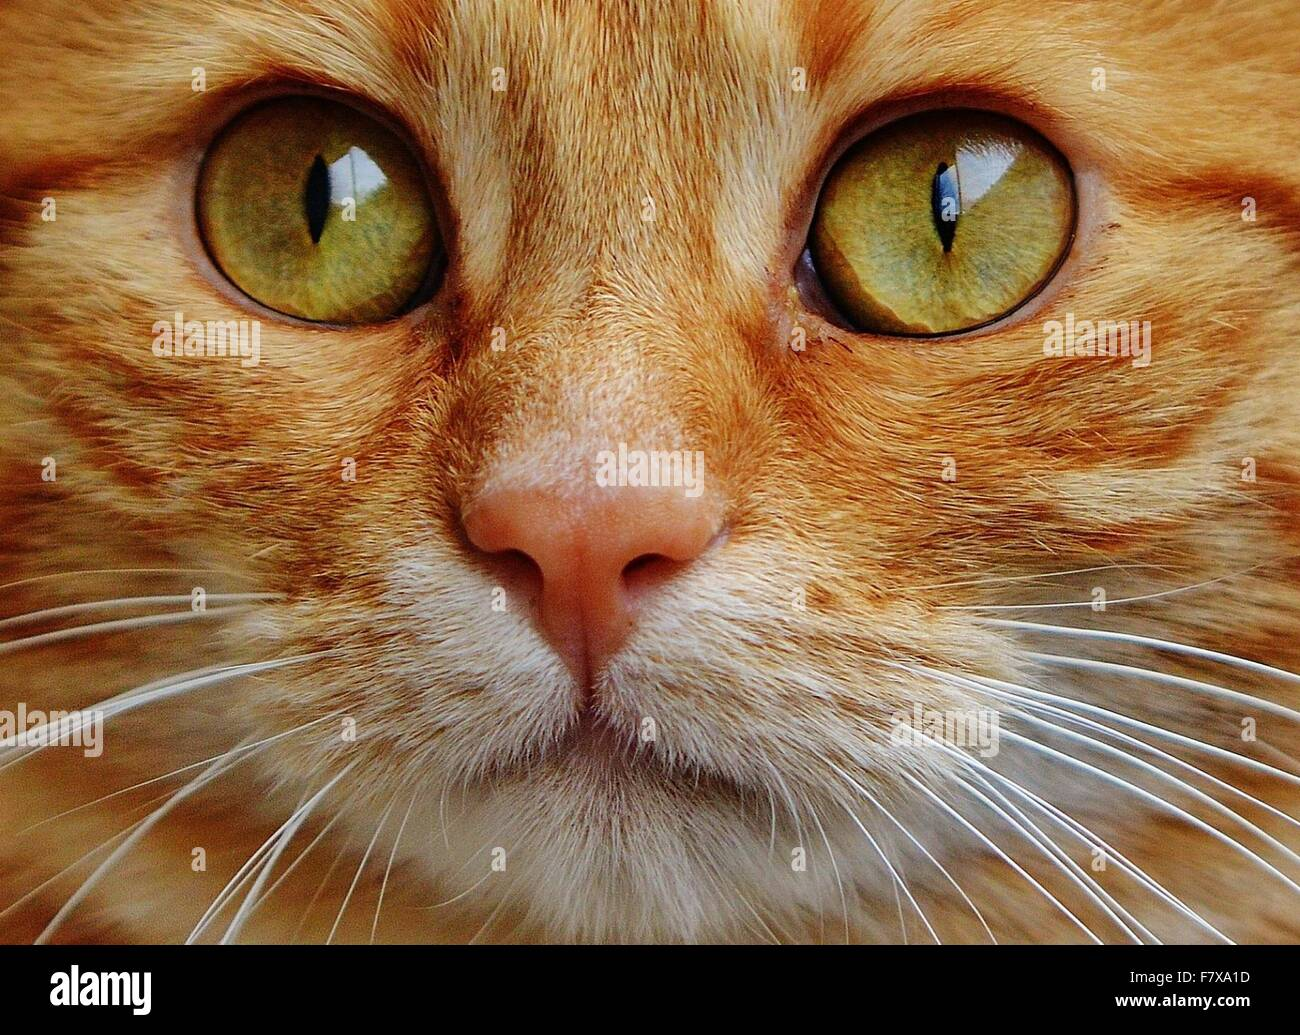 Close-up portrait of a ginger tabby cat with green eyes - Stock Image